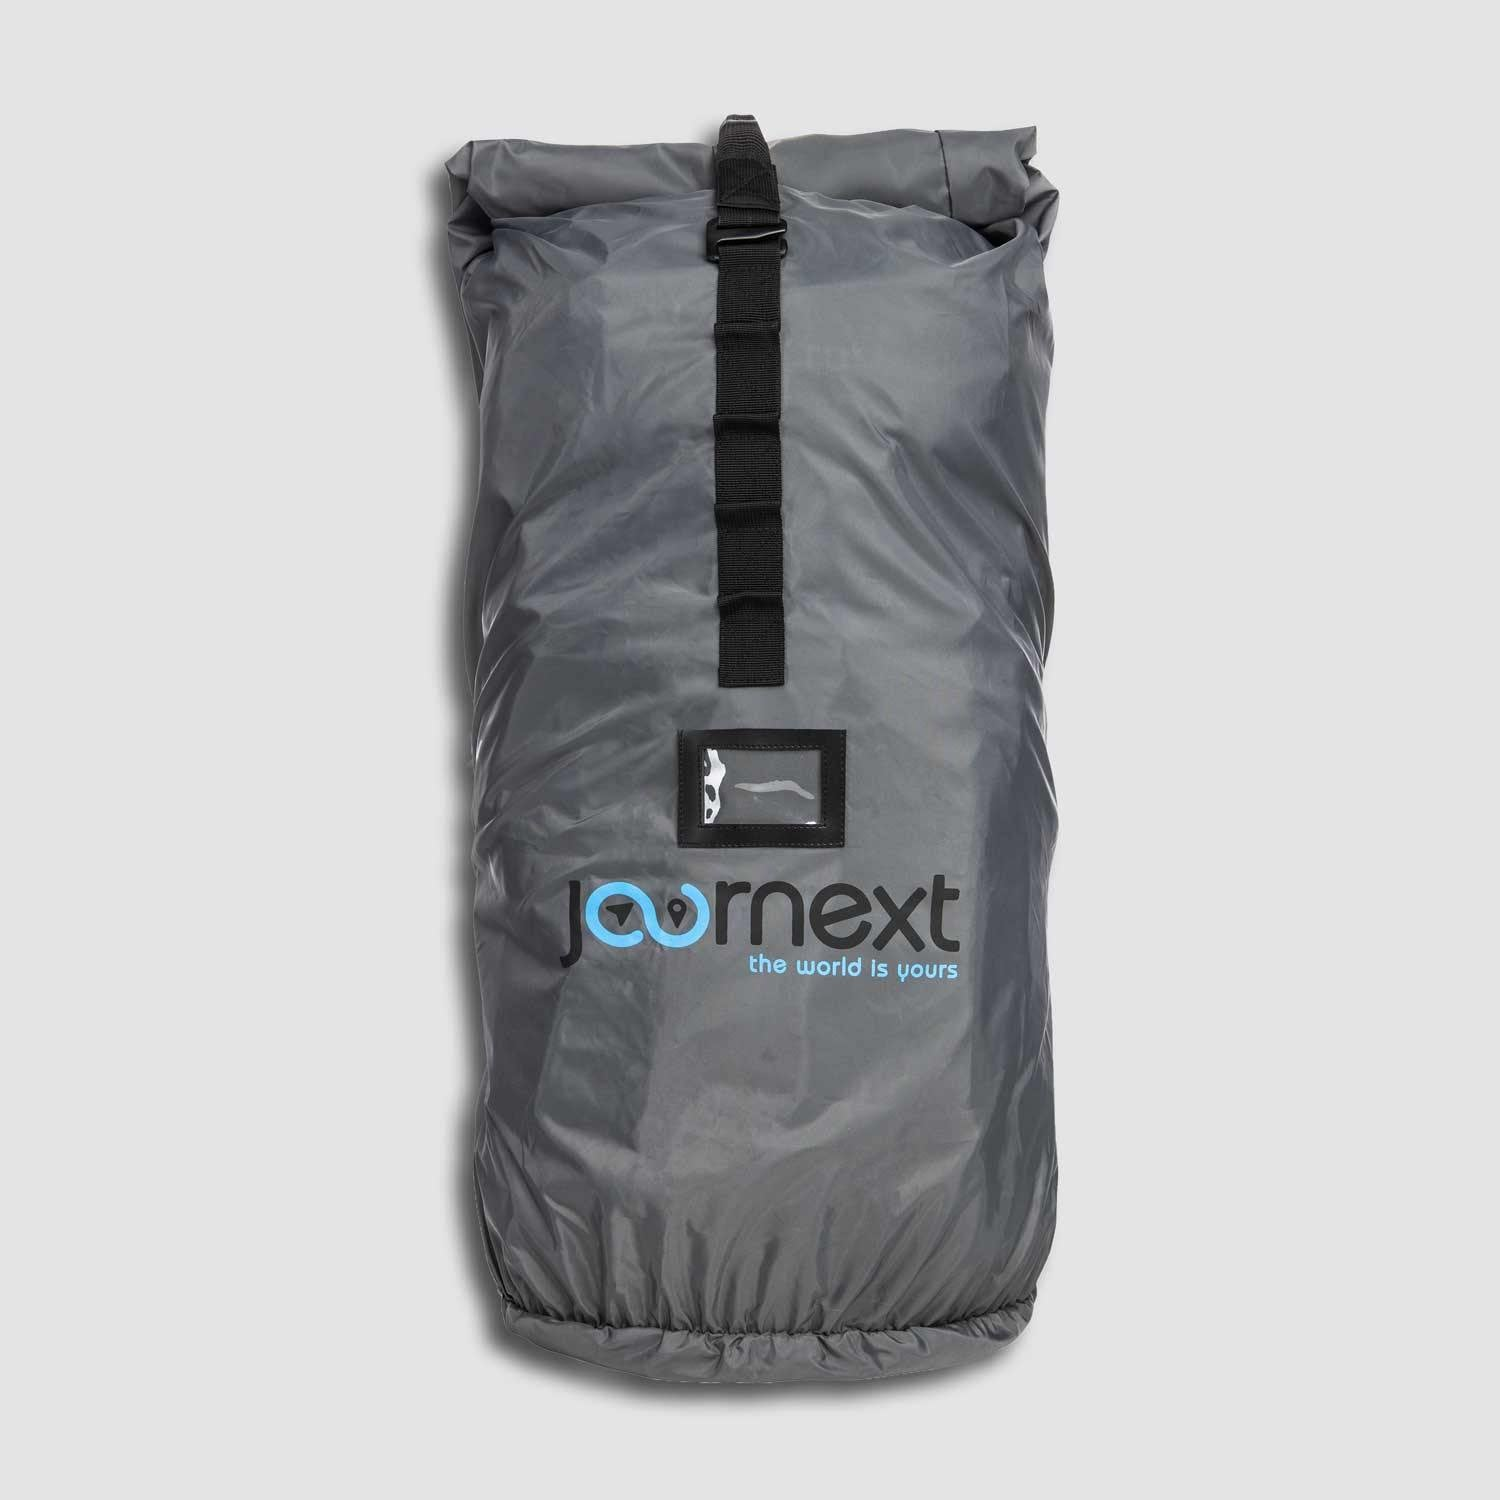 Backpack Cover 2.0 - JOURNEXT